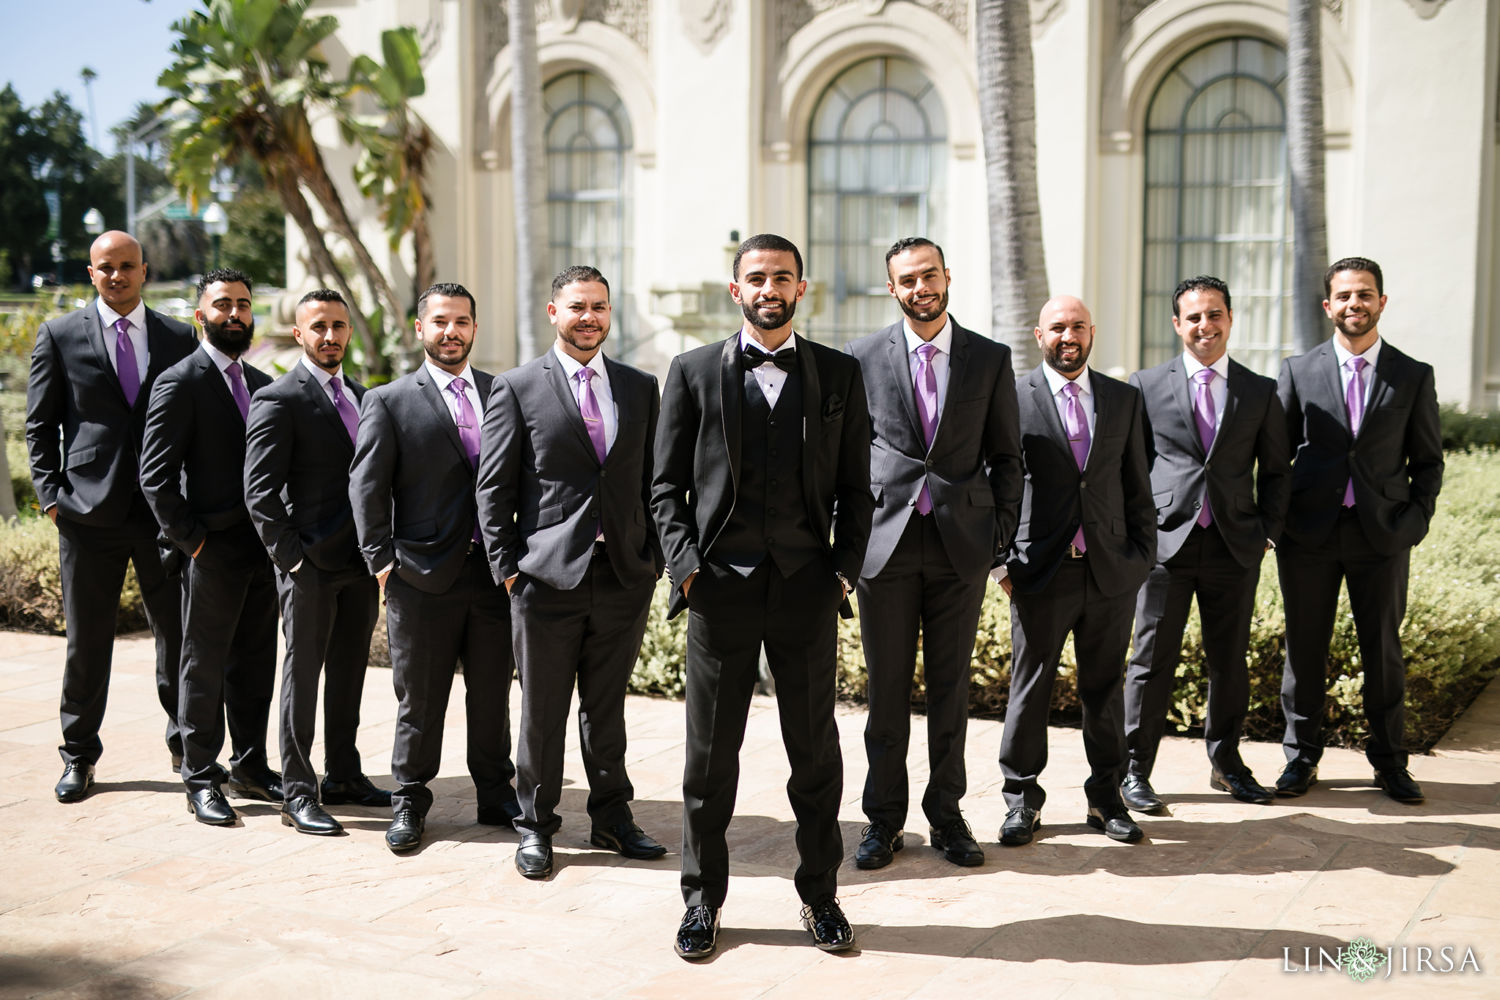 Groomsmen Wedding Party Beverly Hills Courthouse St Mark Coptic Orthodox Church Wedding